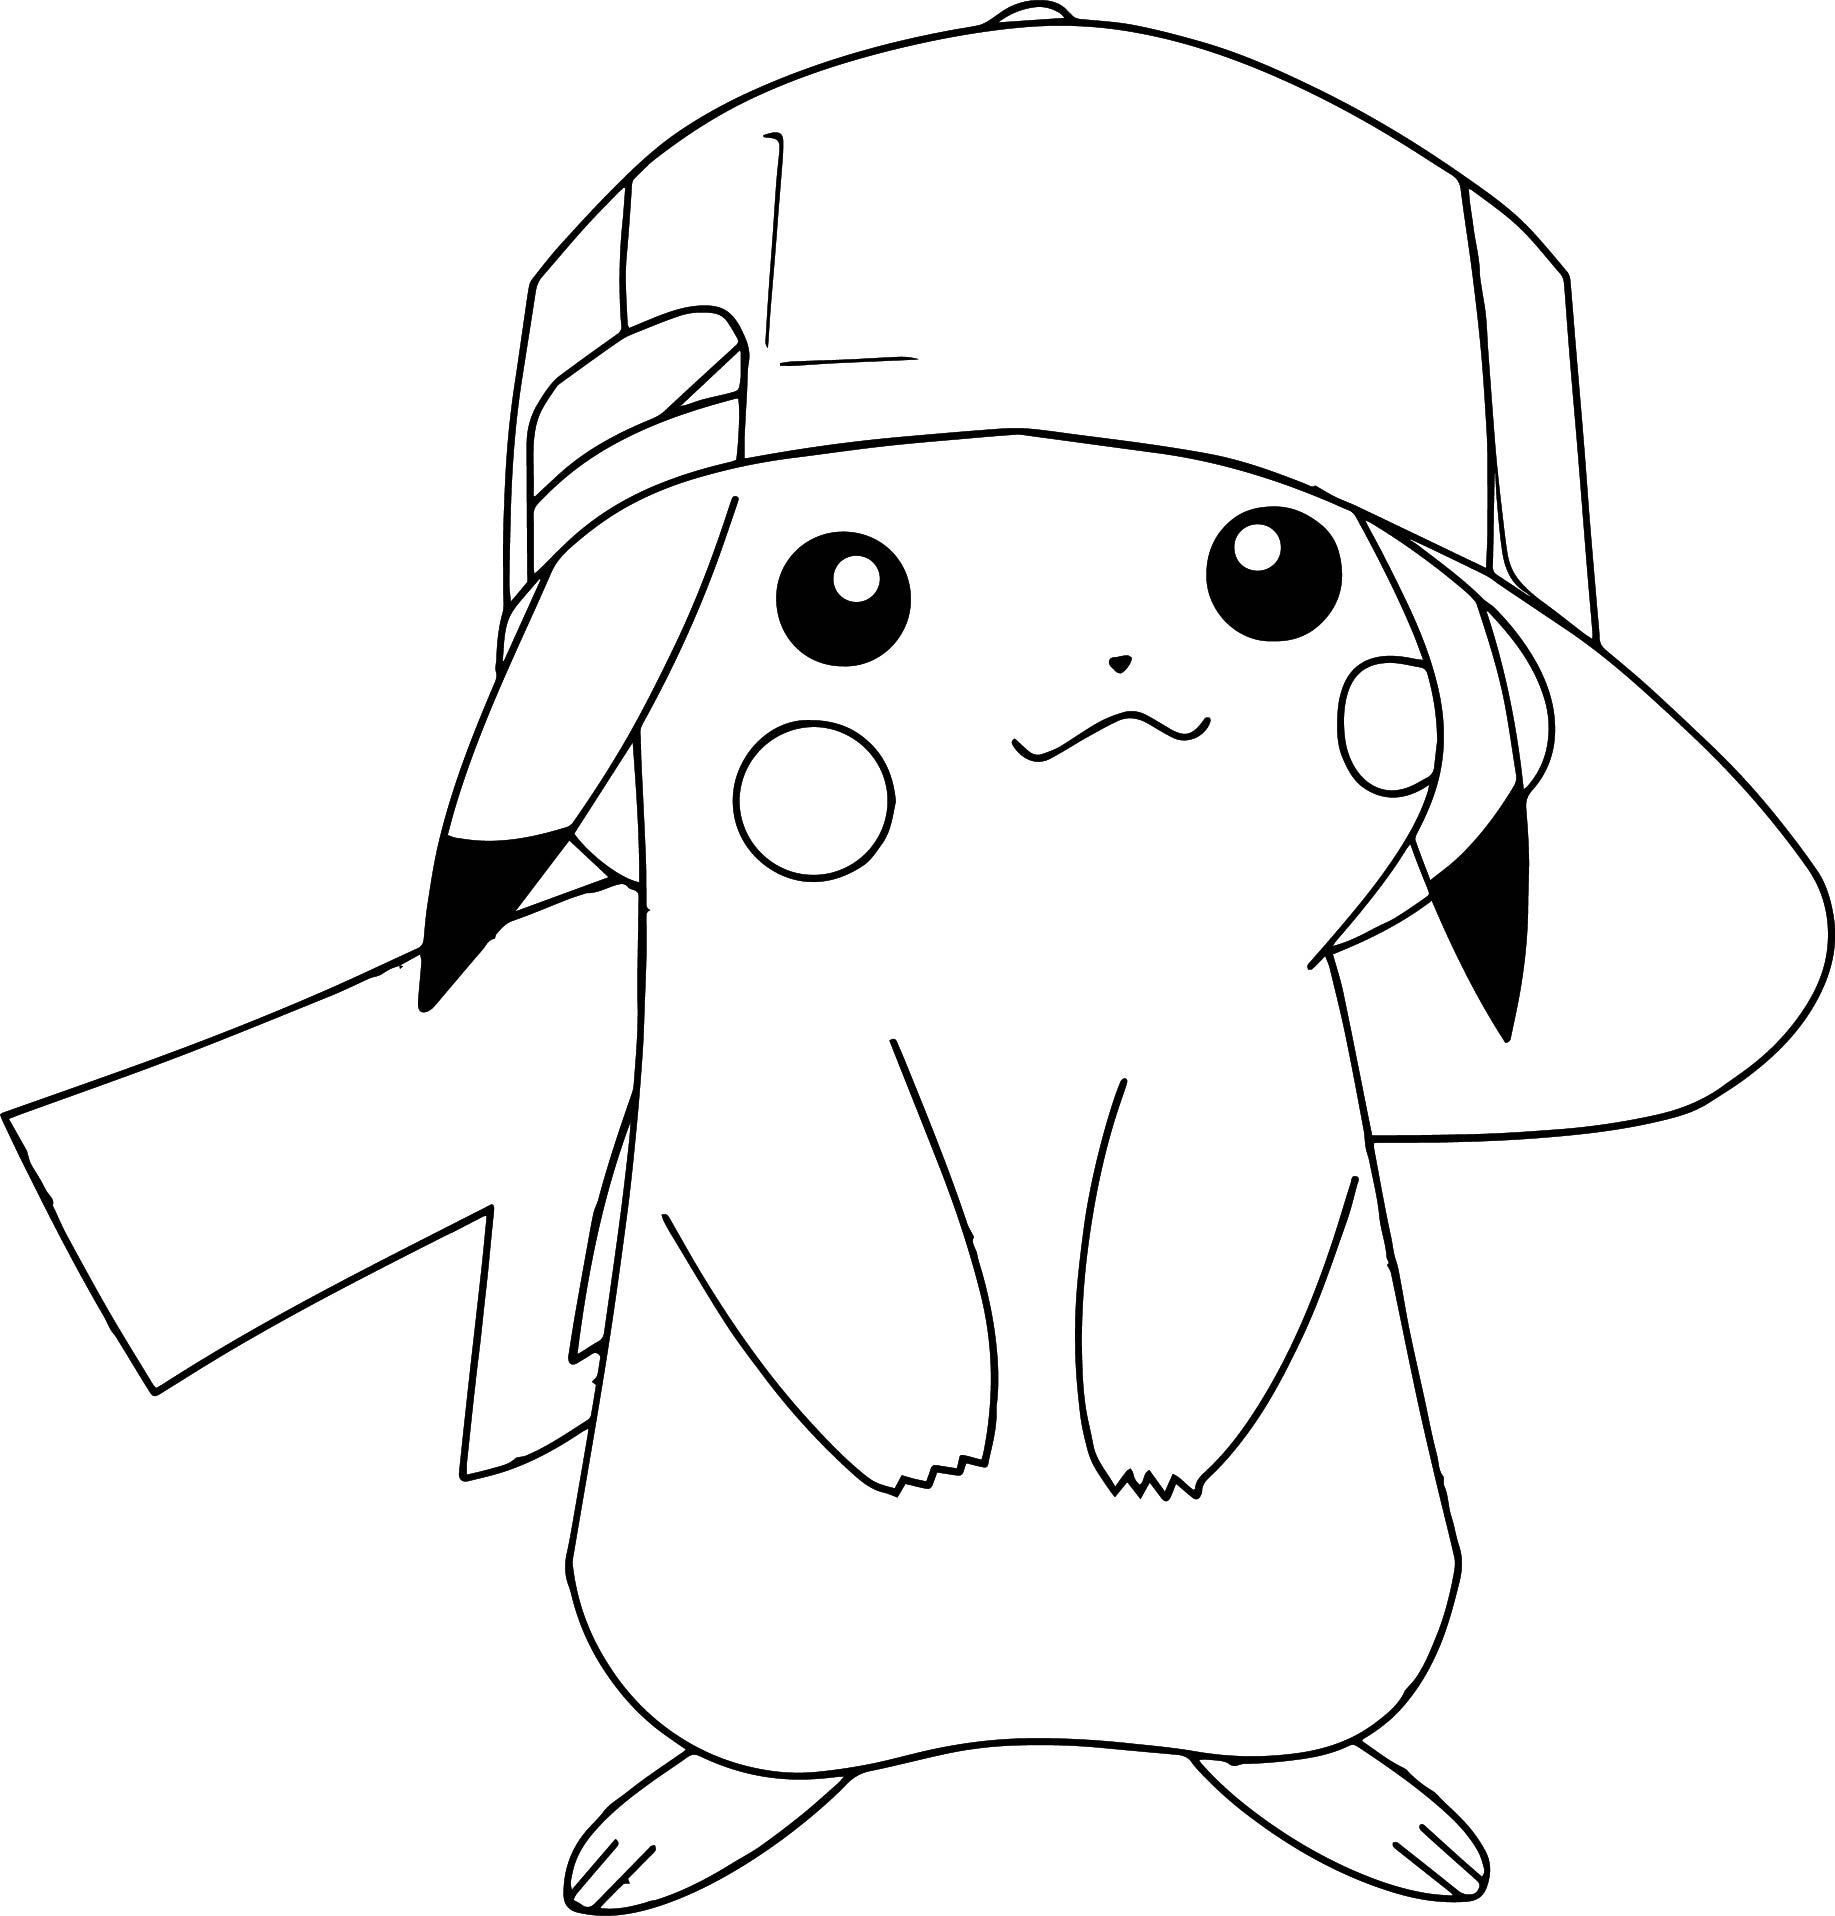 Pokemon Printable Coloring Pages Pikachu Pikachu Coloring Page